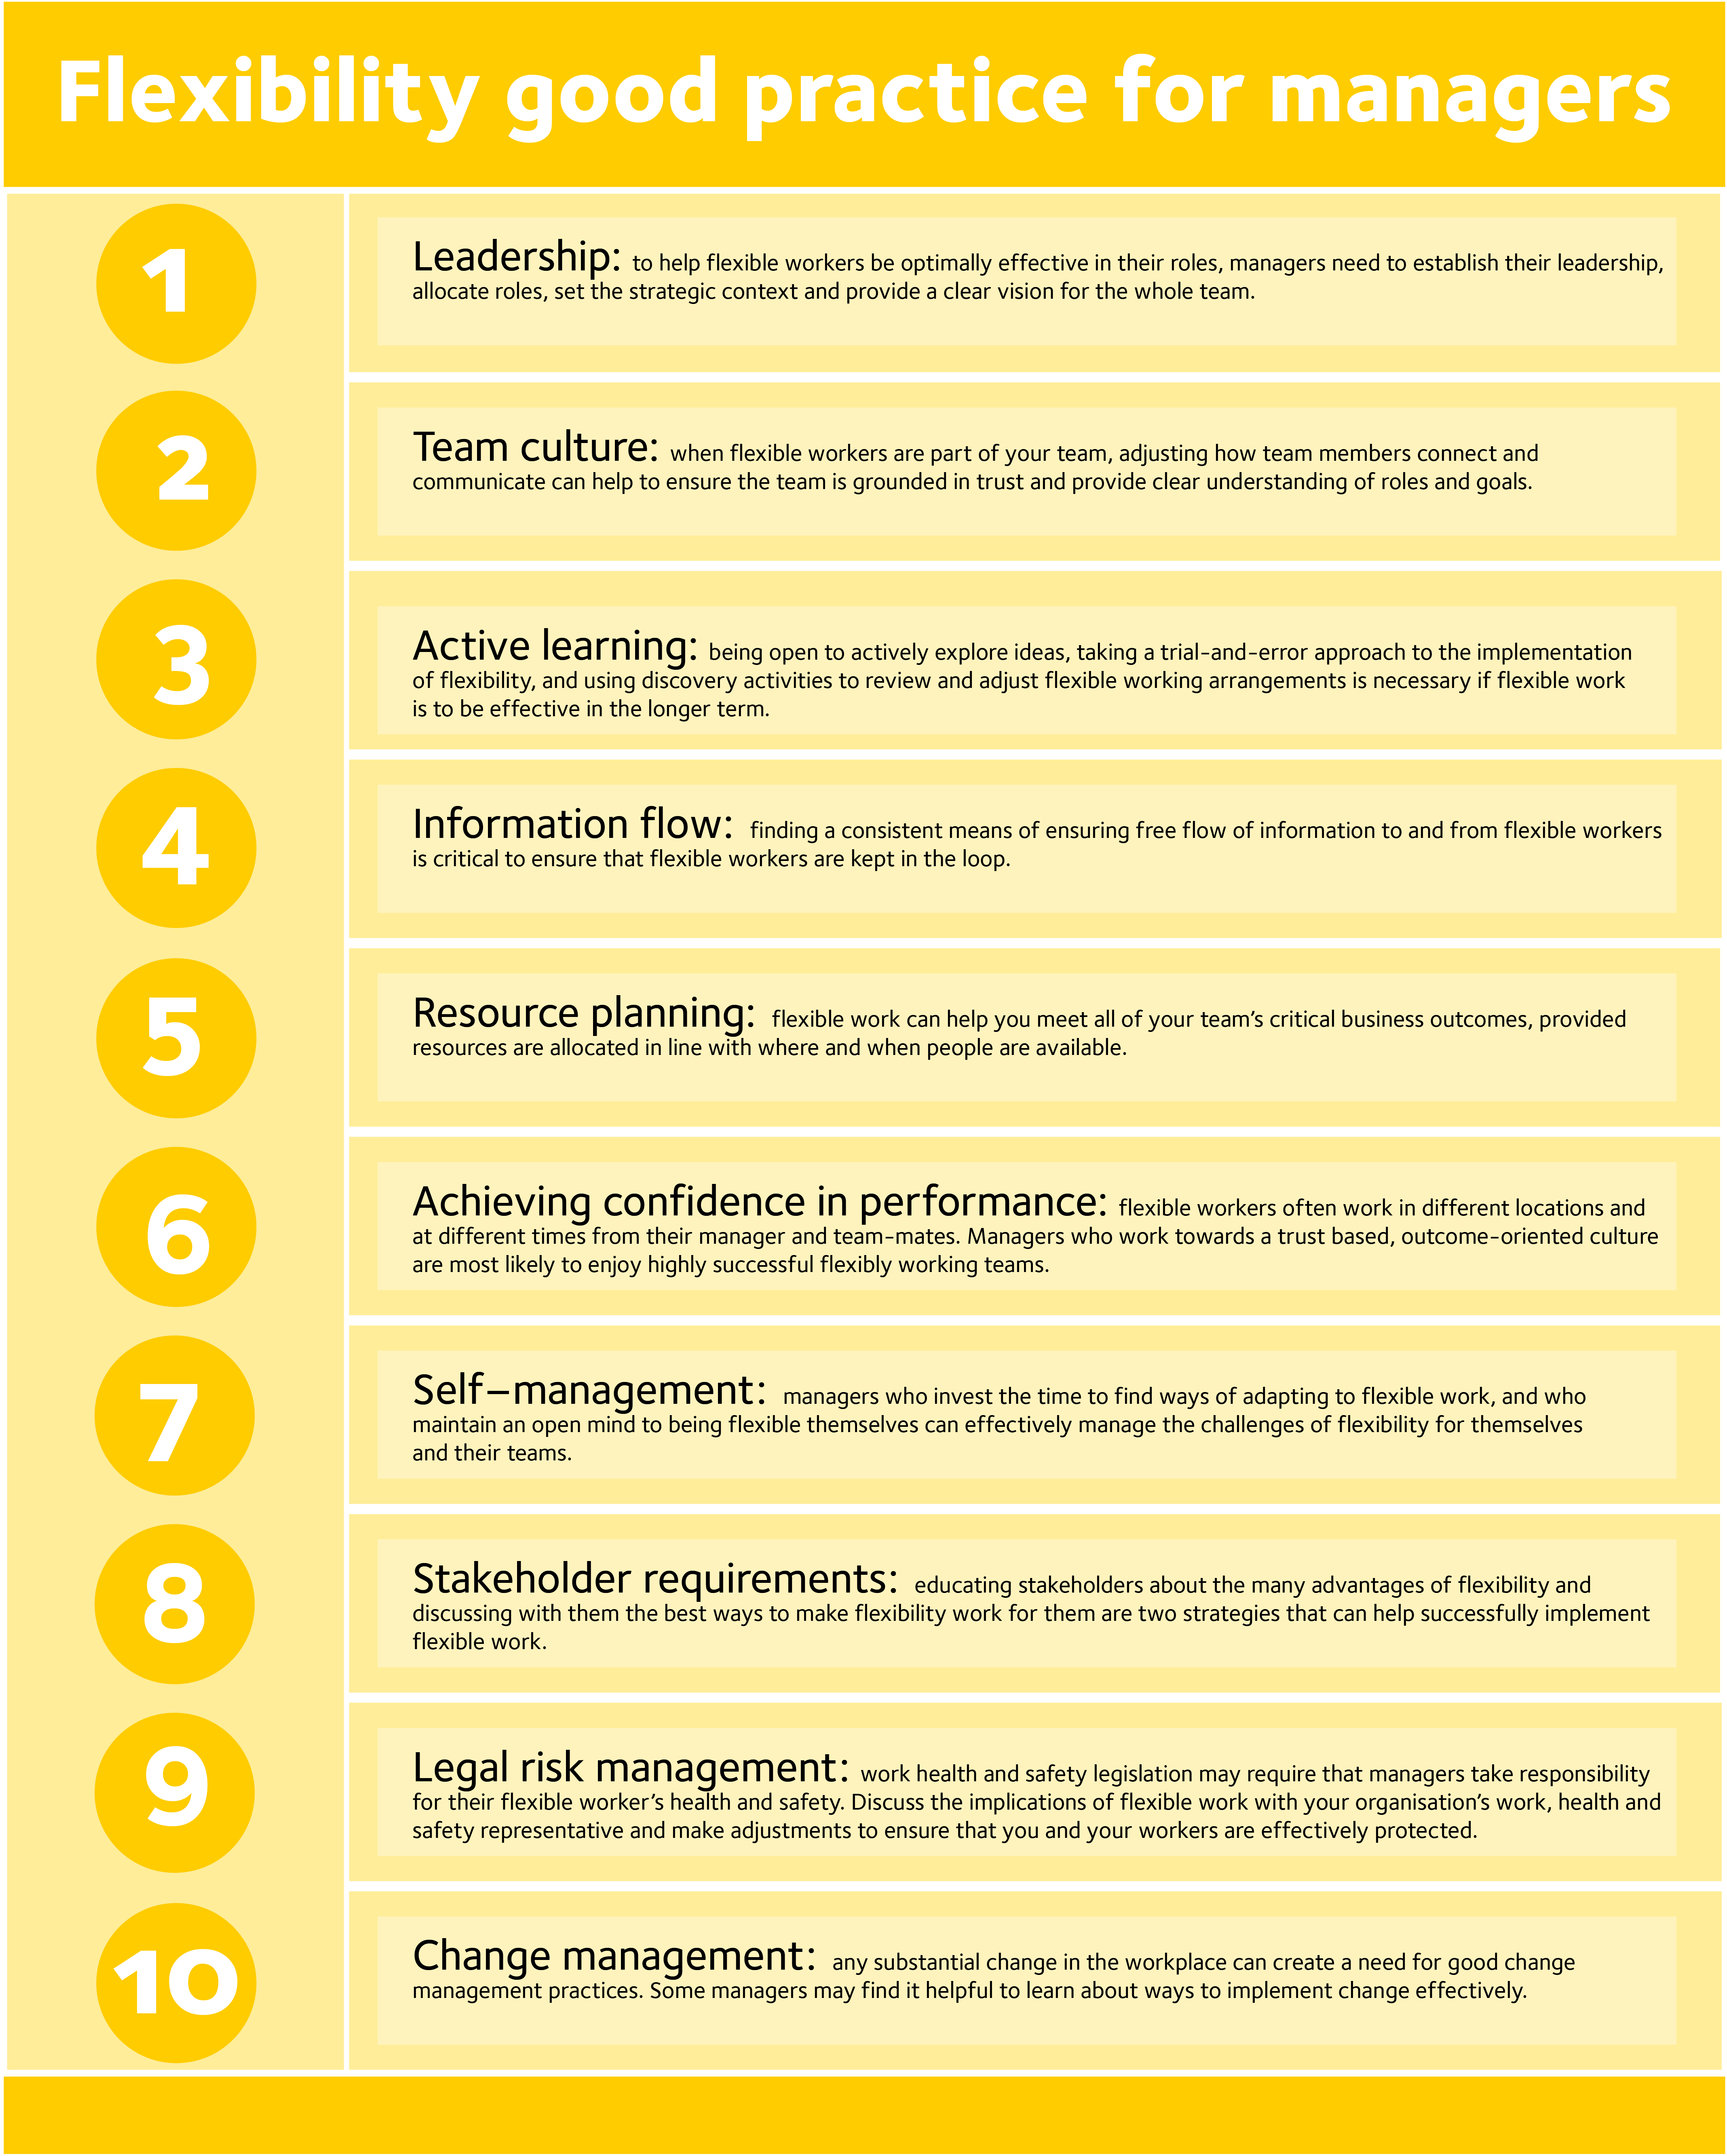 infographic depicts 10 flex leading practice behaviours that managers demonstrate